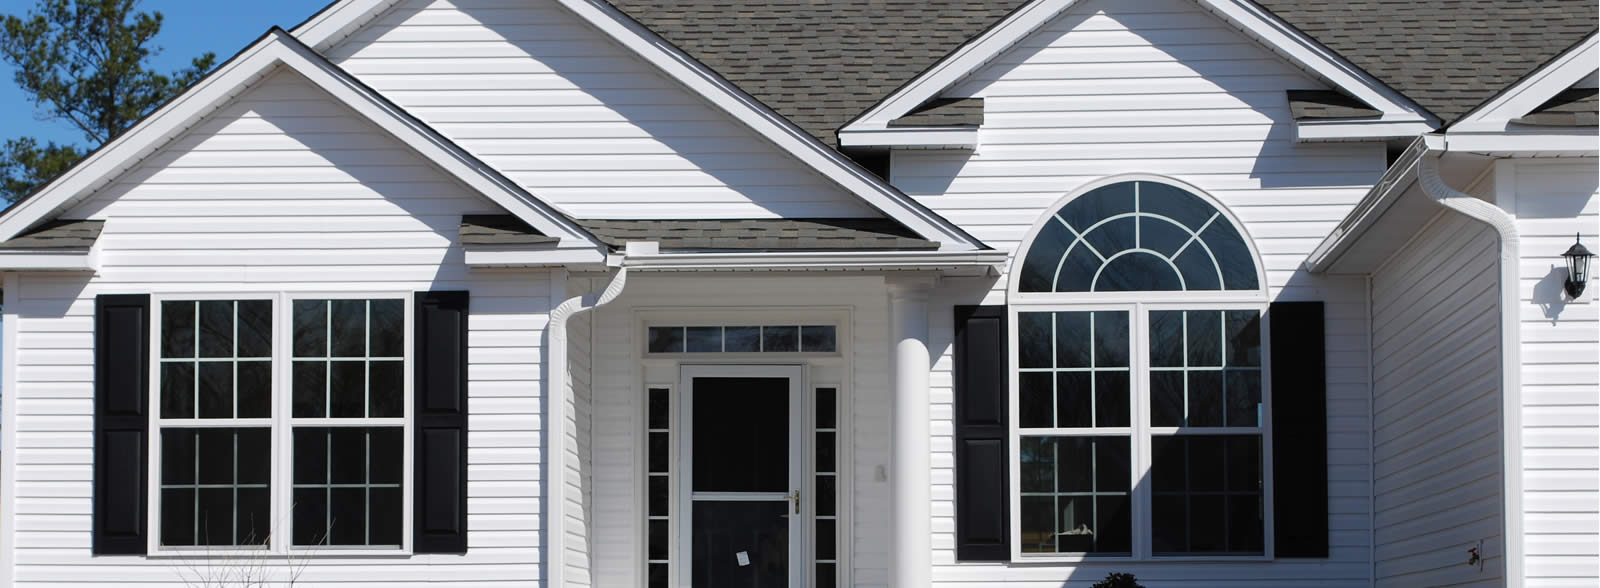 Superior Exterior Home Improvement Services. From Vinyl Siding In Oklahoma  City ...